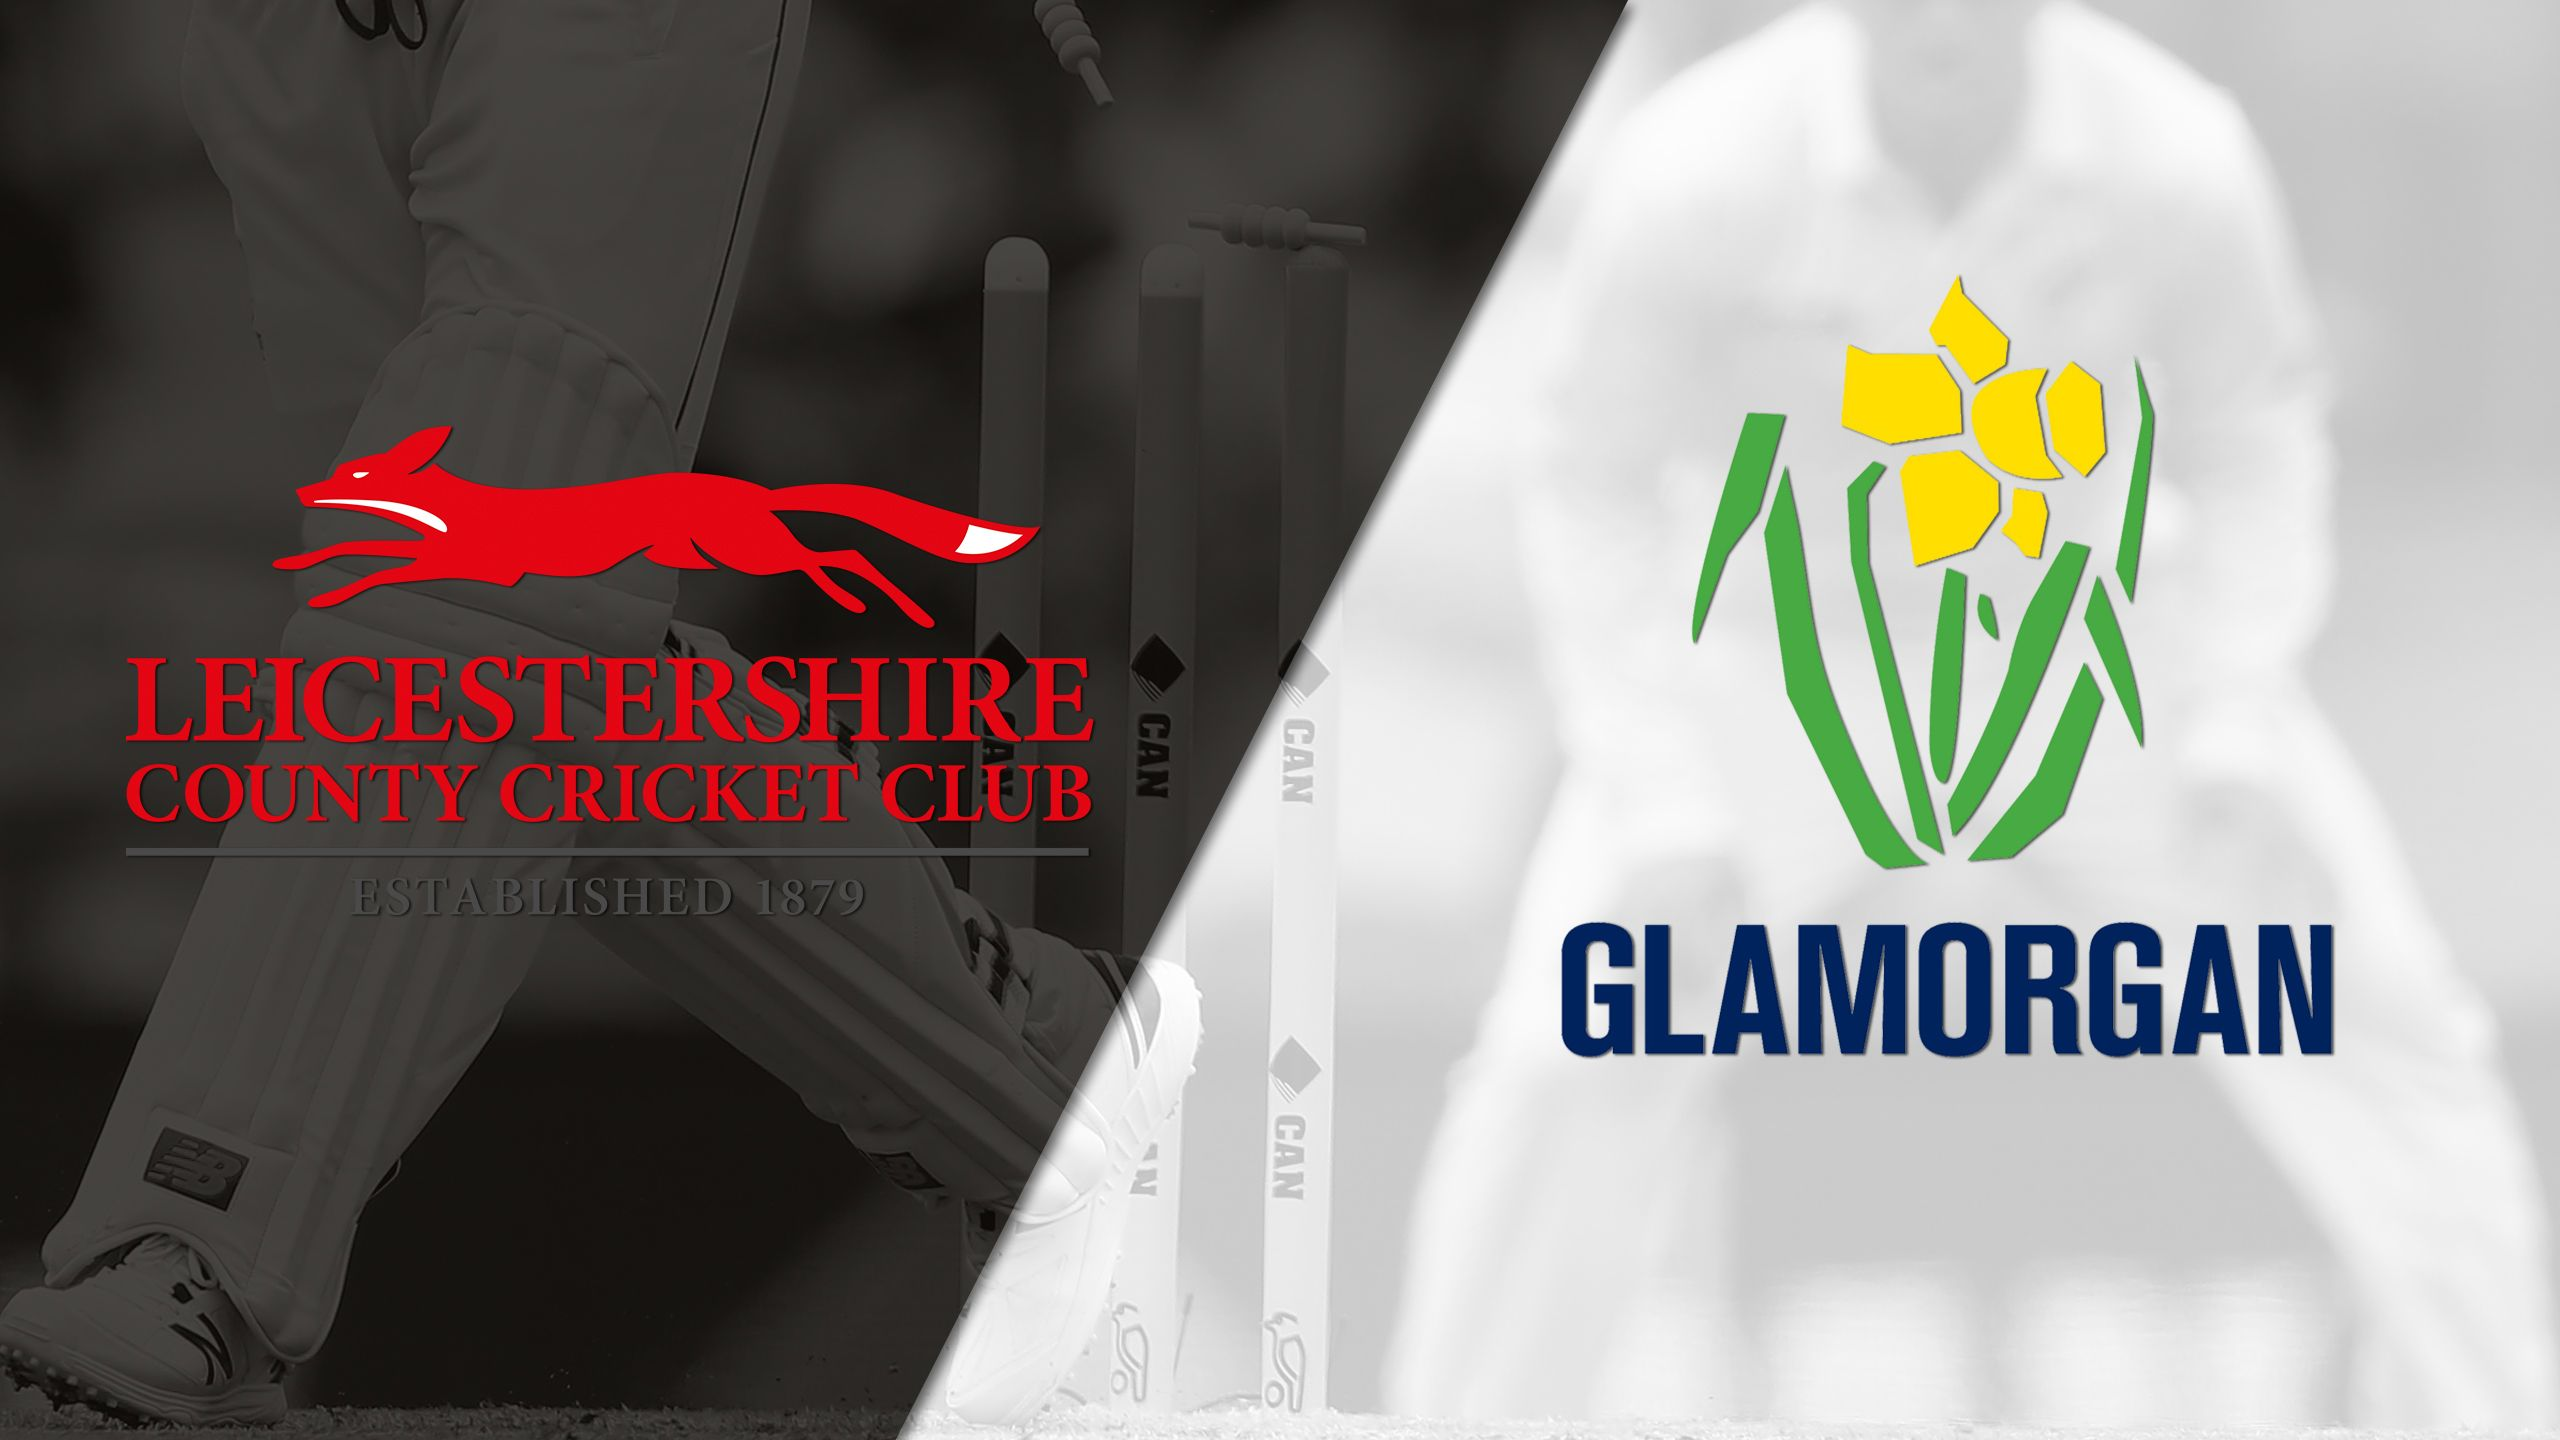 Leicestershire vs. Glamorgan (Quarterfinals) (NatWest T20 Blast)